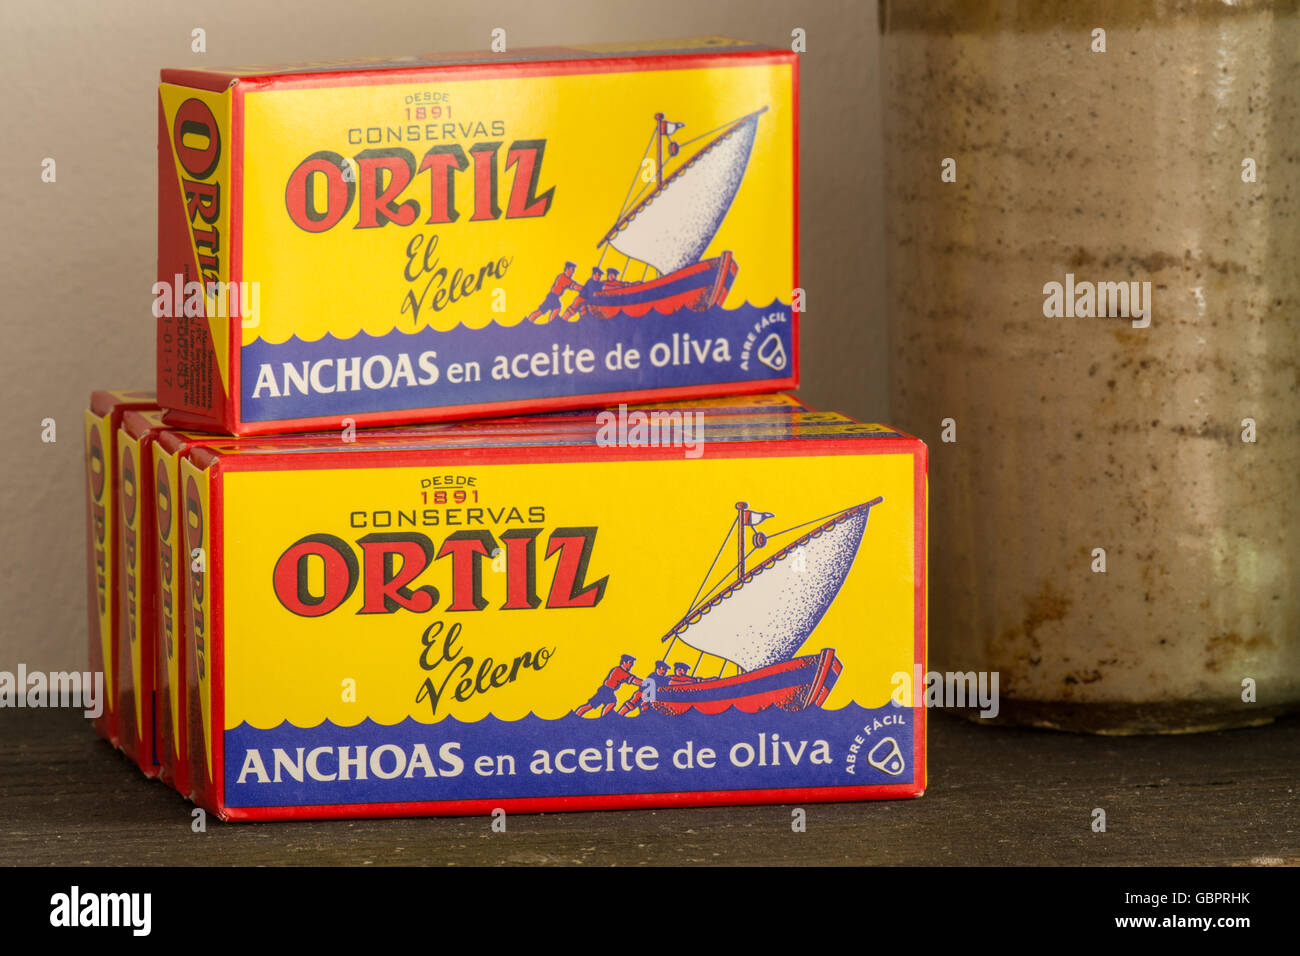 Anchovies - Ortiz Anchovies in Olive Oil - Stock Image